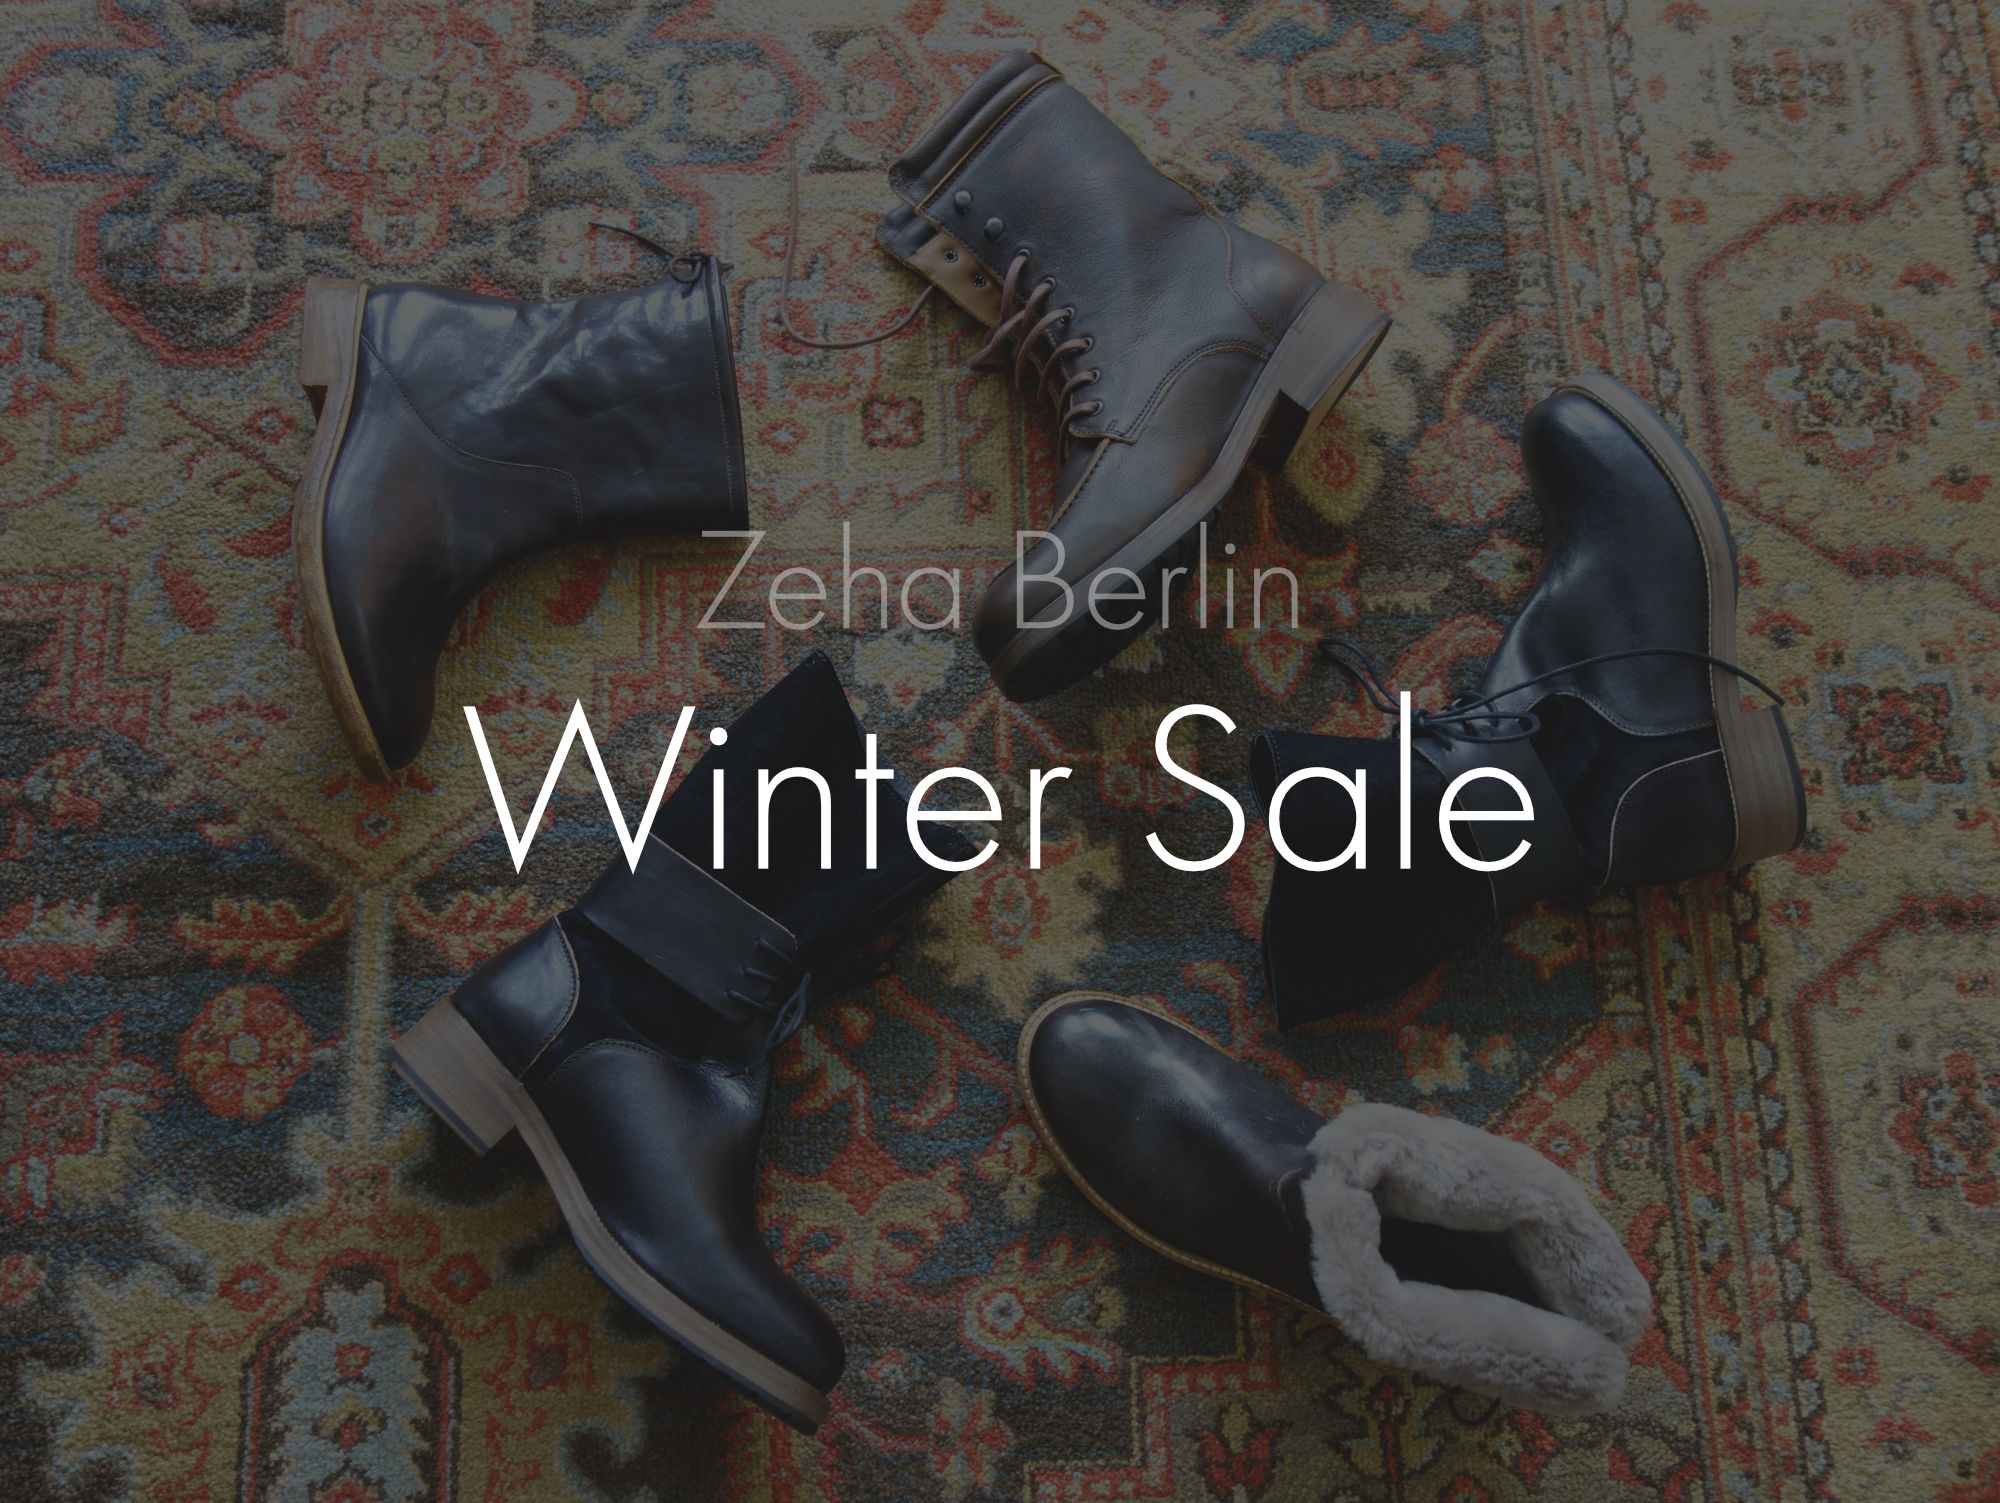 Zeha Berlin Winter Sale